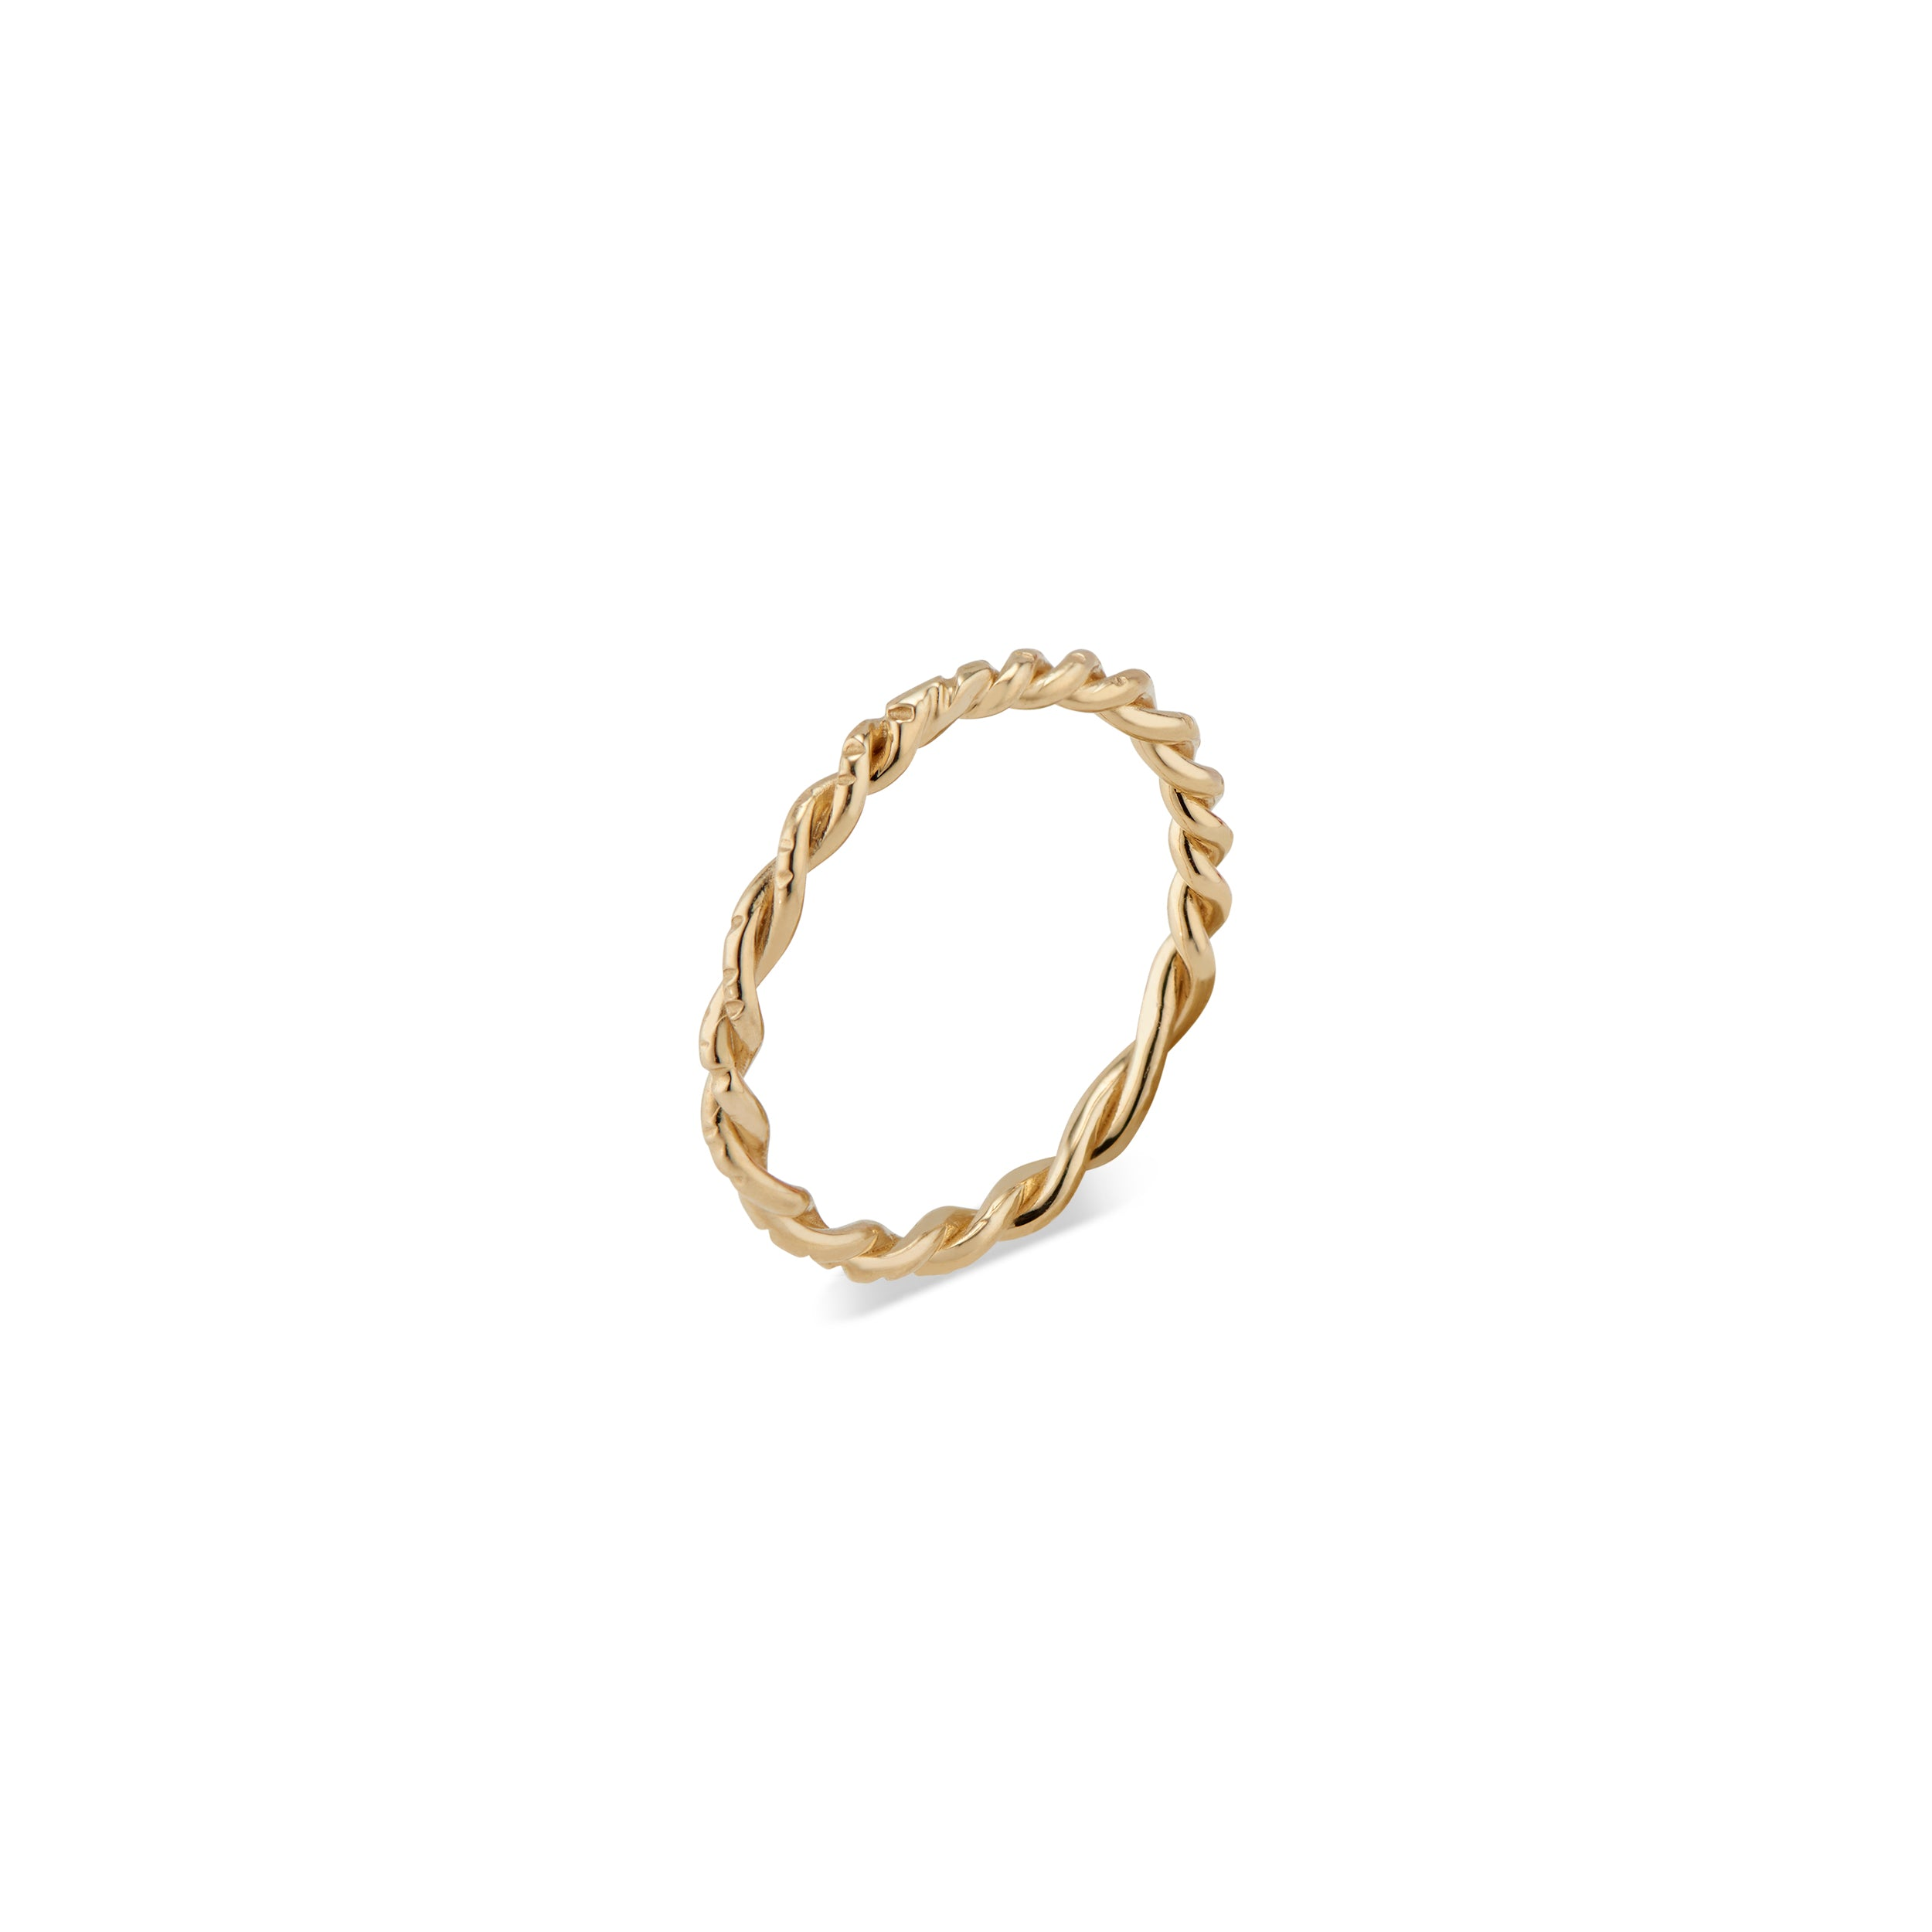 This 14k gold twisted Lauren Ring features Natalie McMillan's signature etchings. It is the ultimate stacking ring, as its thin, twisted design effortlessly goes with any ring it gets paired with!